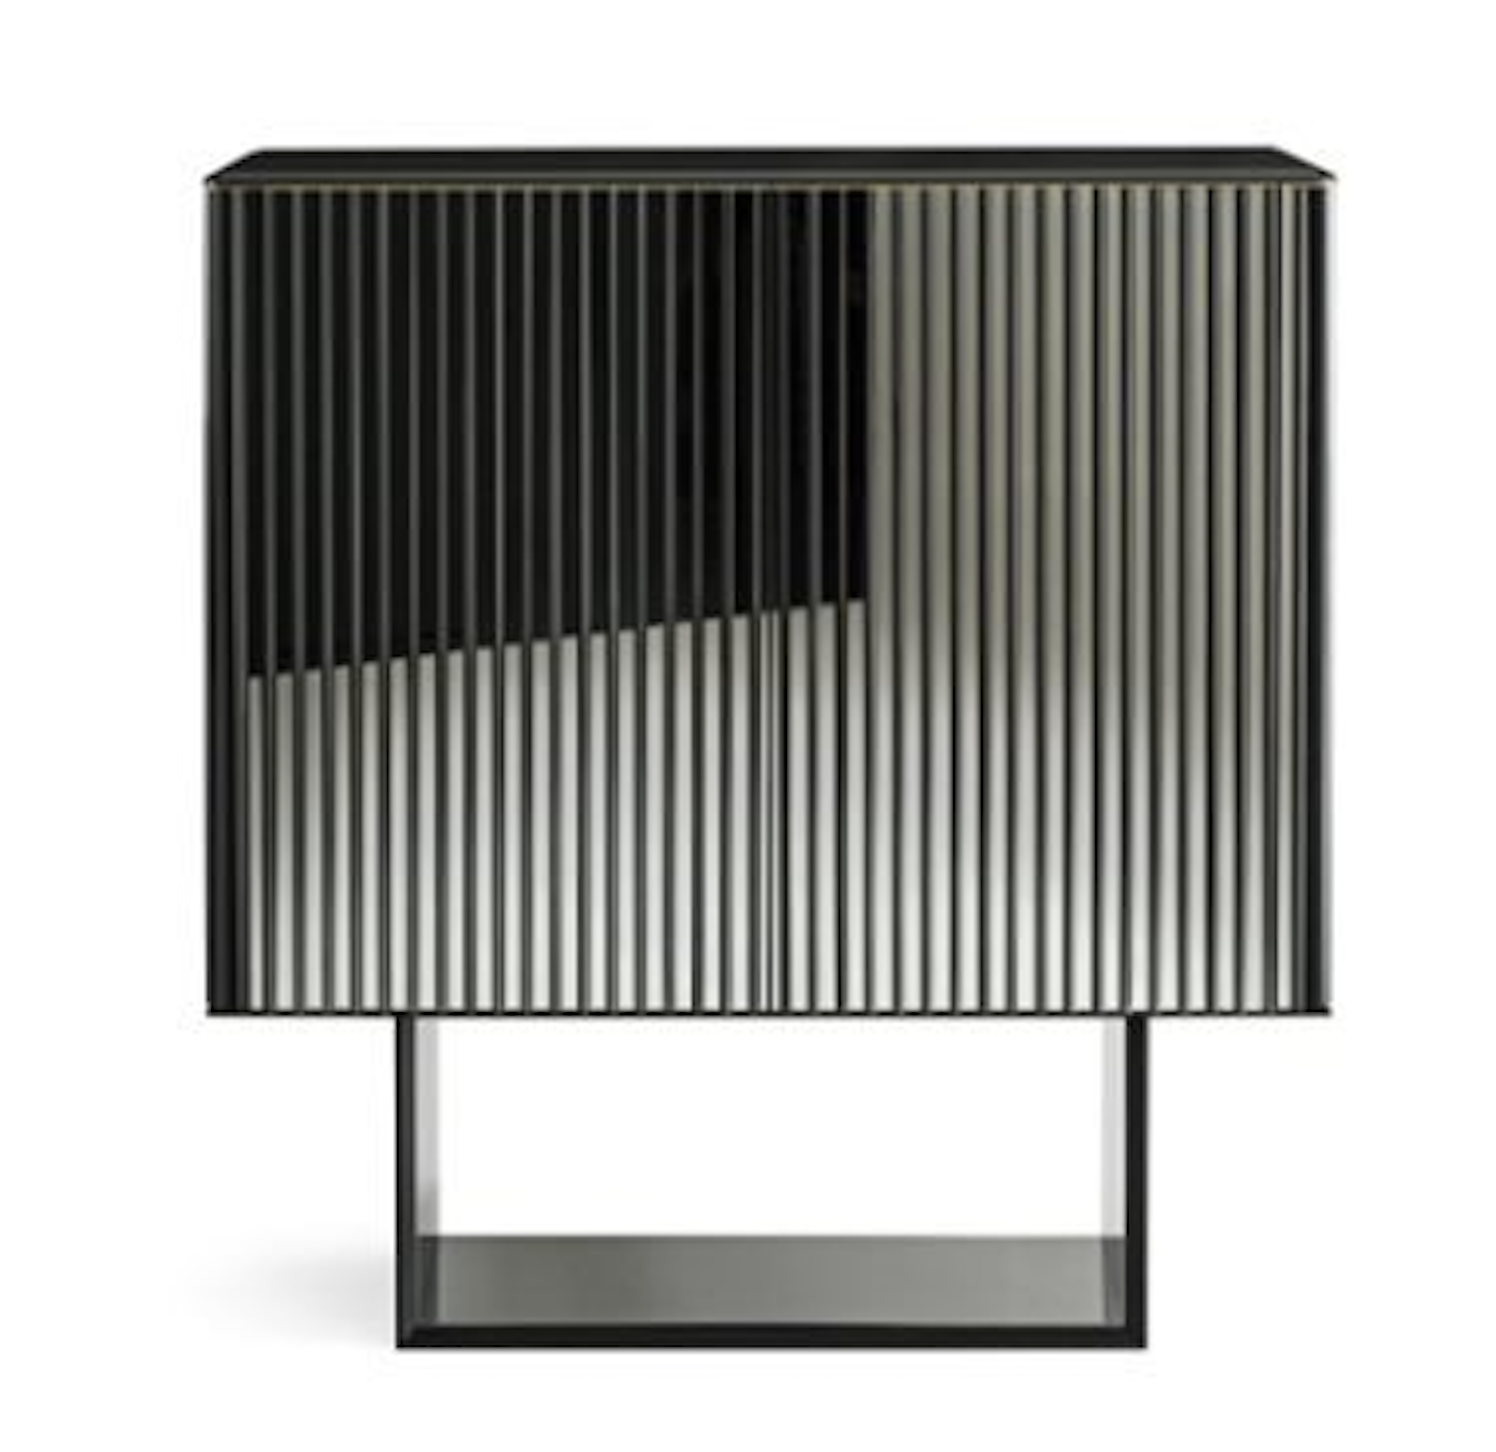 Product Image 5th Avenue cabinet